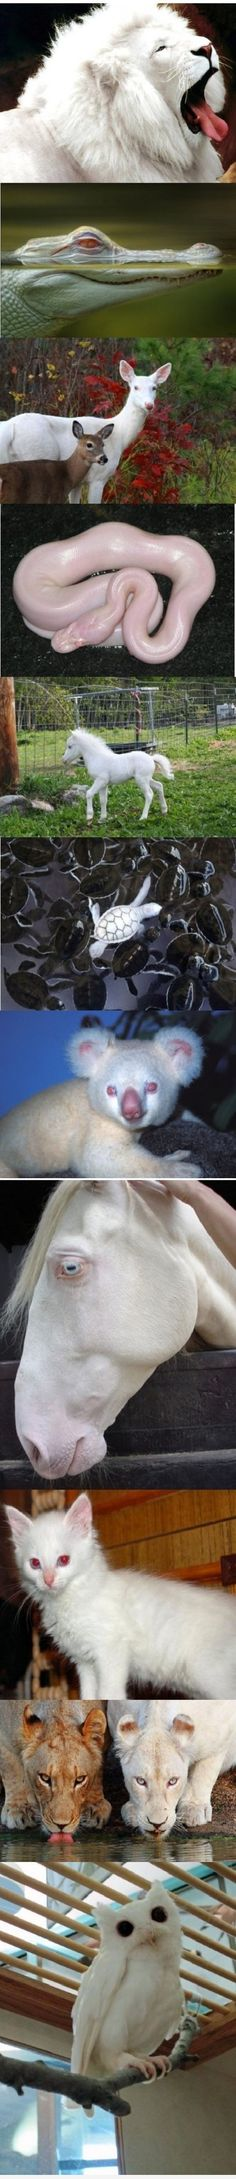 albino animals. I kind of can't handle how that snake looks.